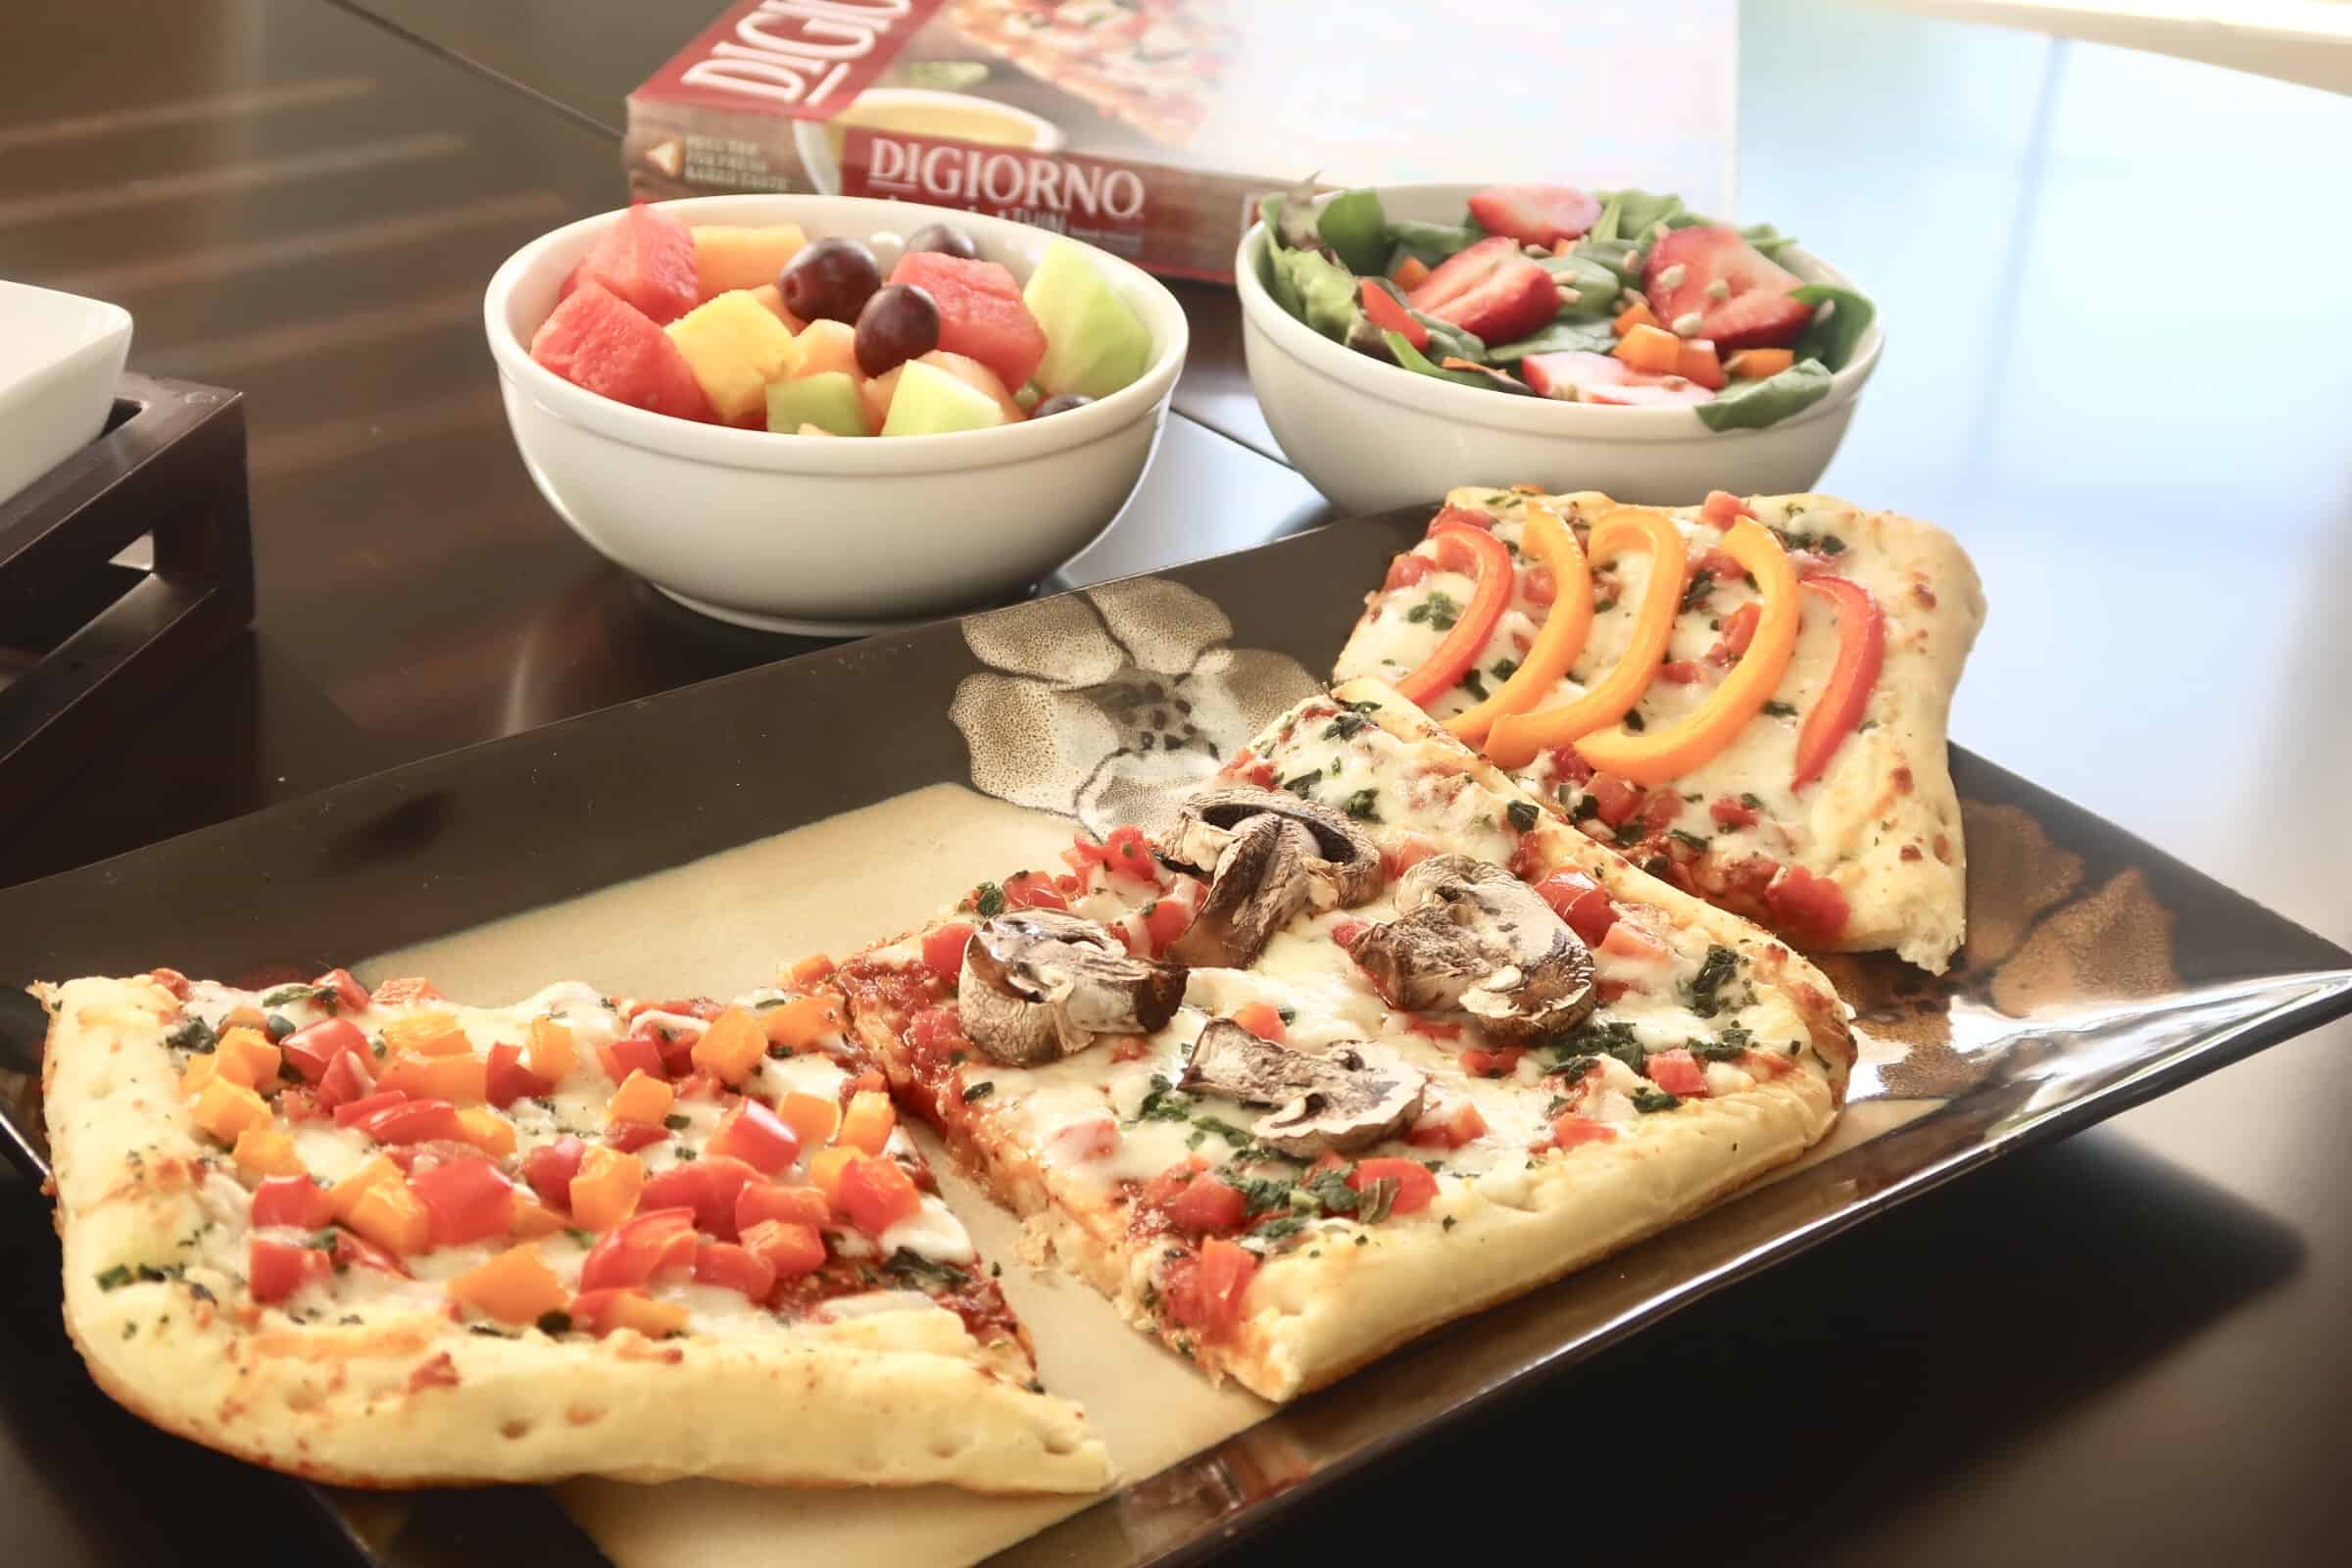 Add vegetable toppings with a veggie bar to amp up your pizza night in a healthy way